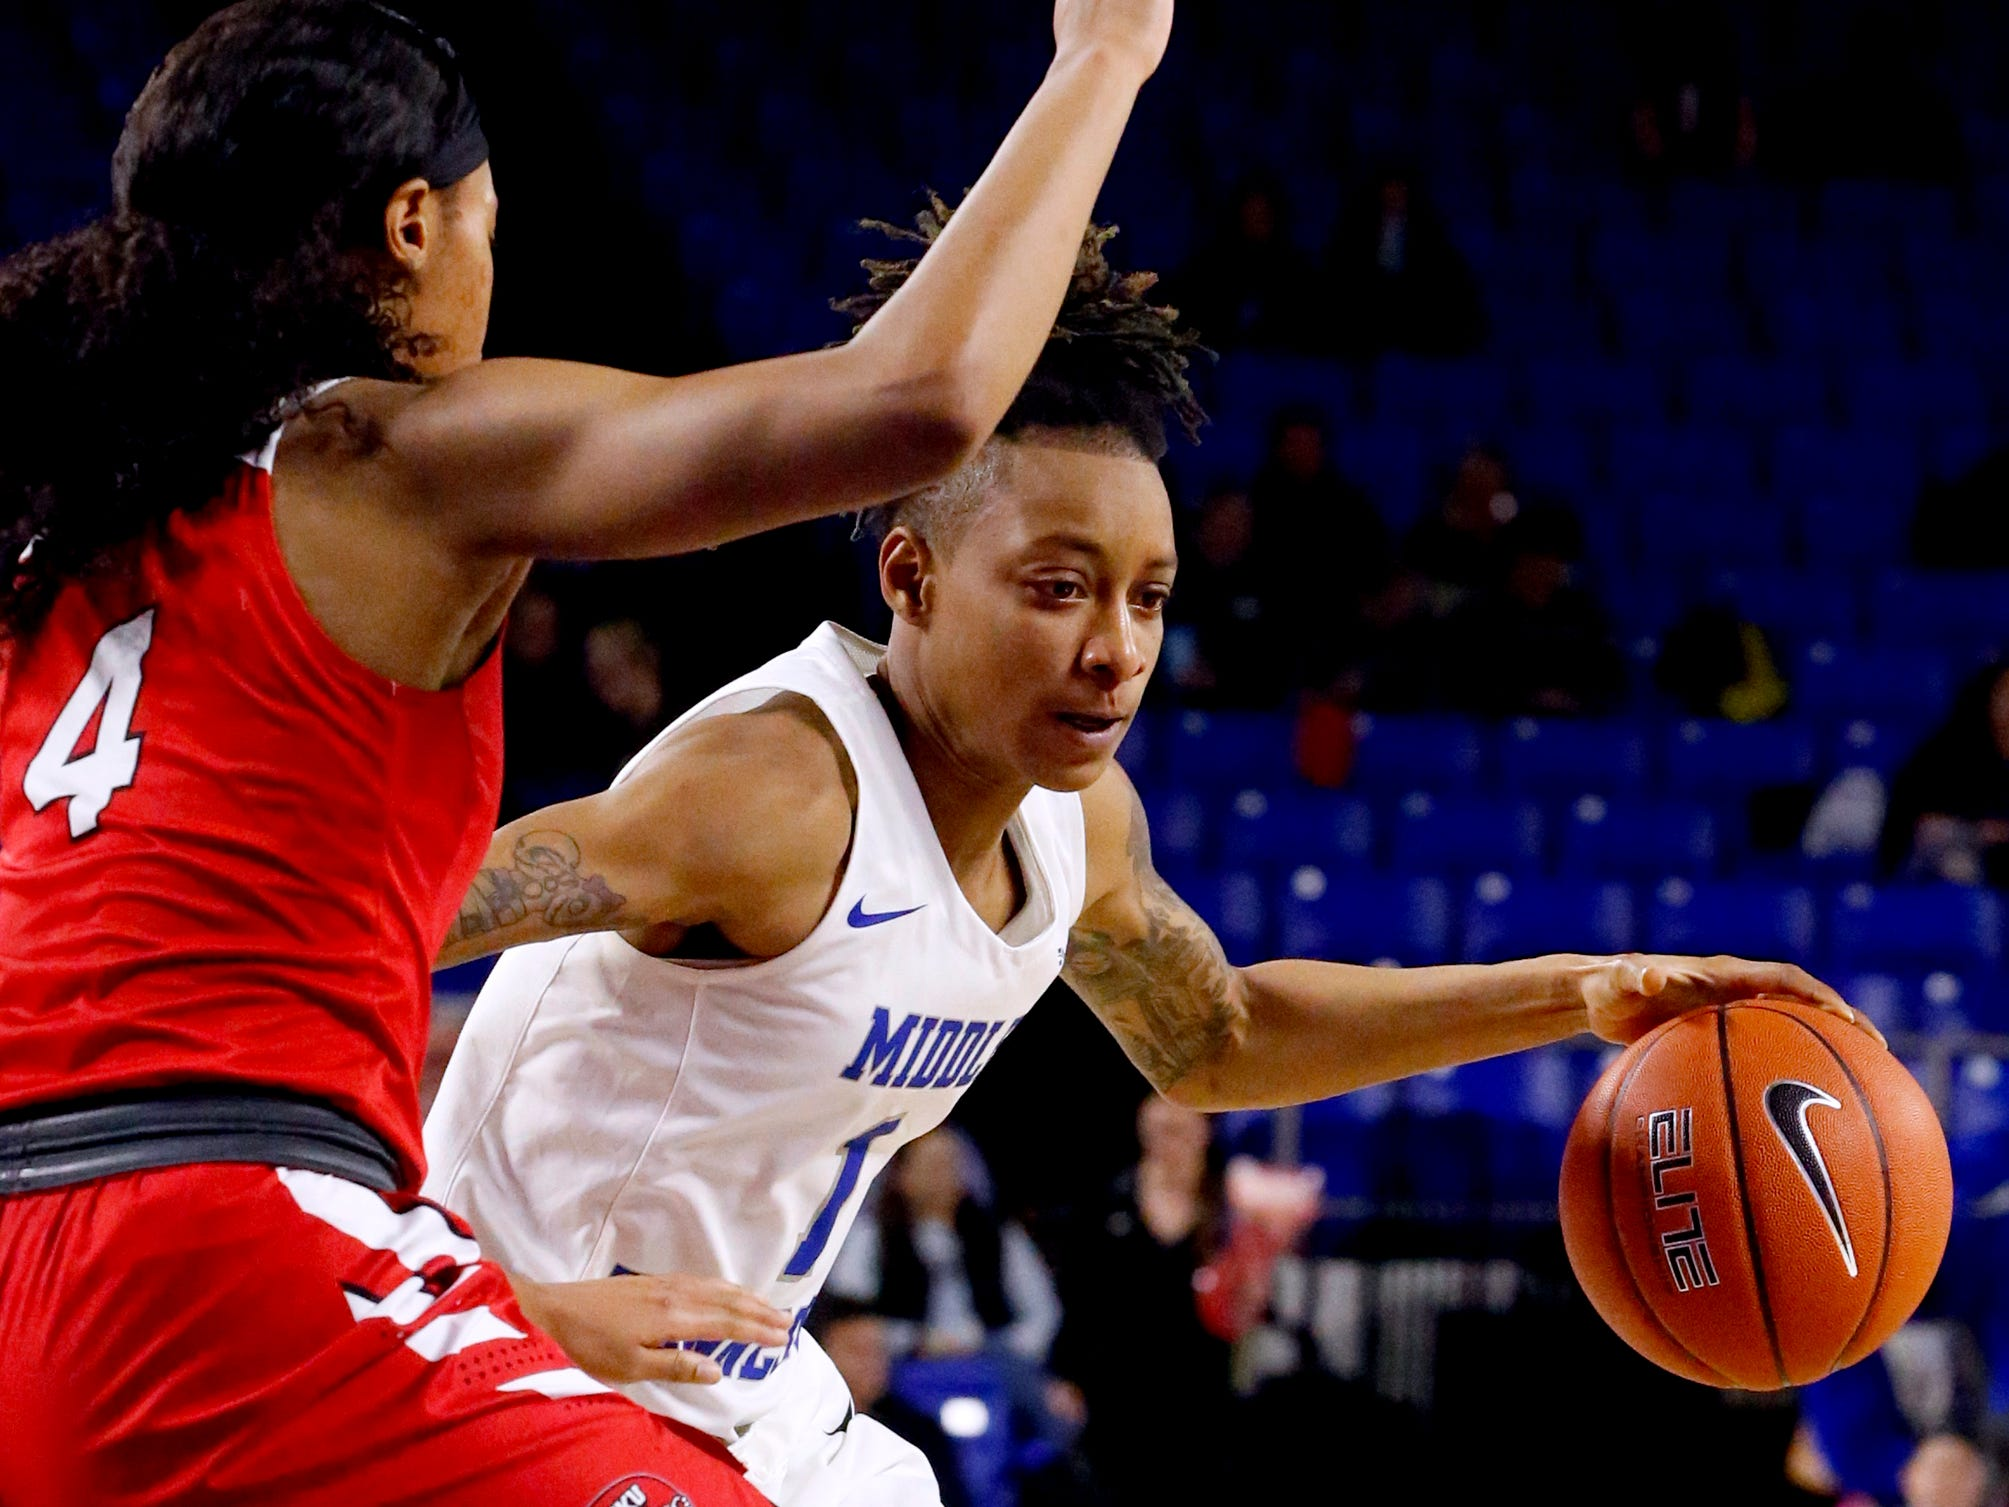 MTSU's guard A'Queen Hayes (1) works her way to the basket as Western's forward Dee Givens (4) guards her on Thursday, Feb. 14, 2019.